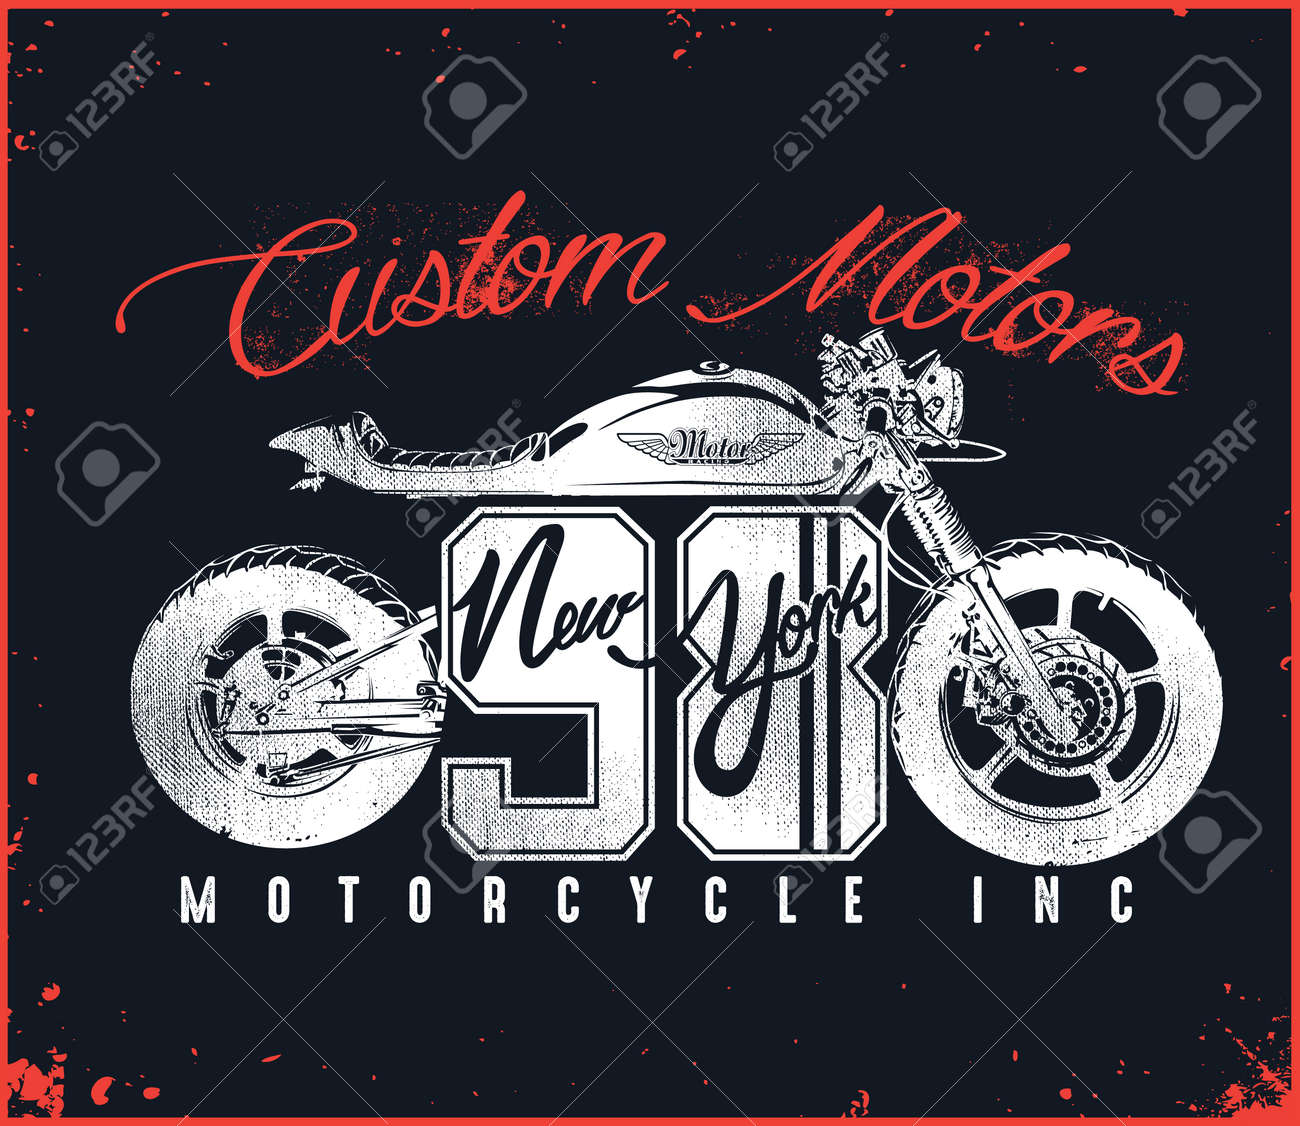 Motorcycle Custom T Shirt Design New York Royalty Free Cliparts